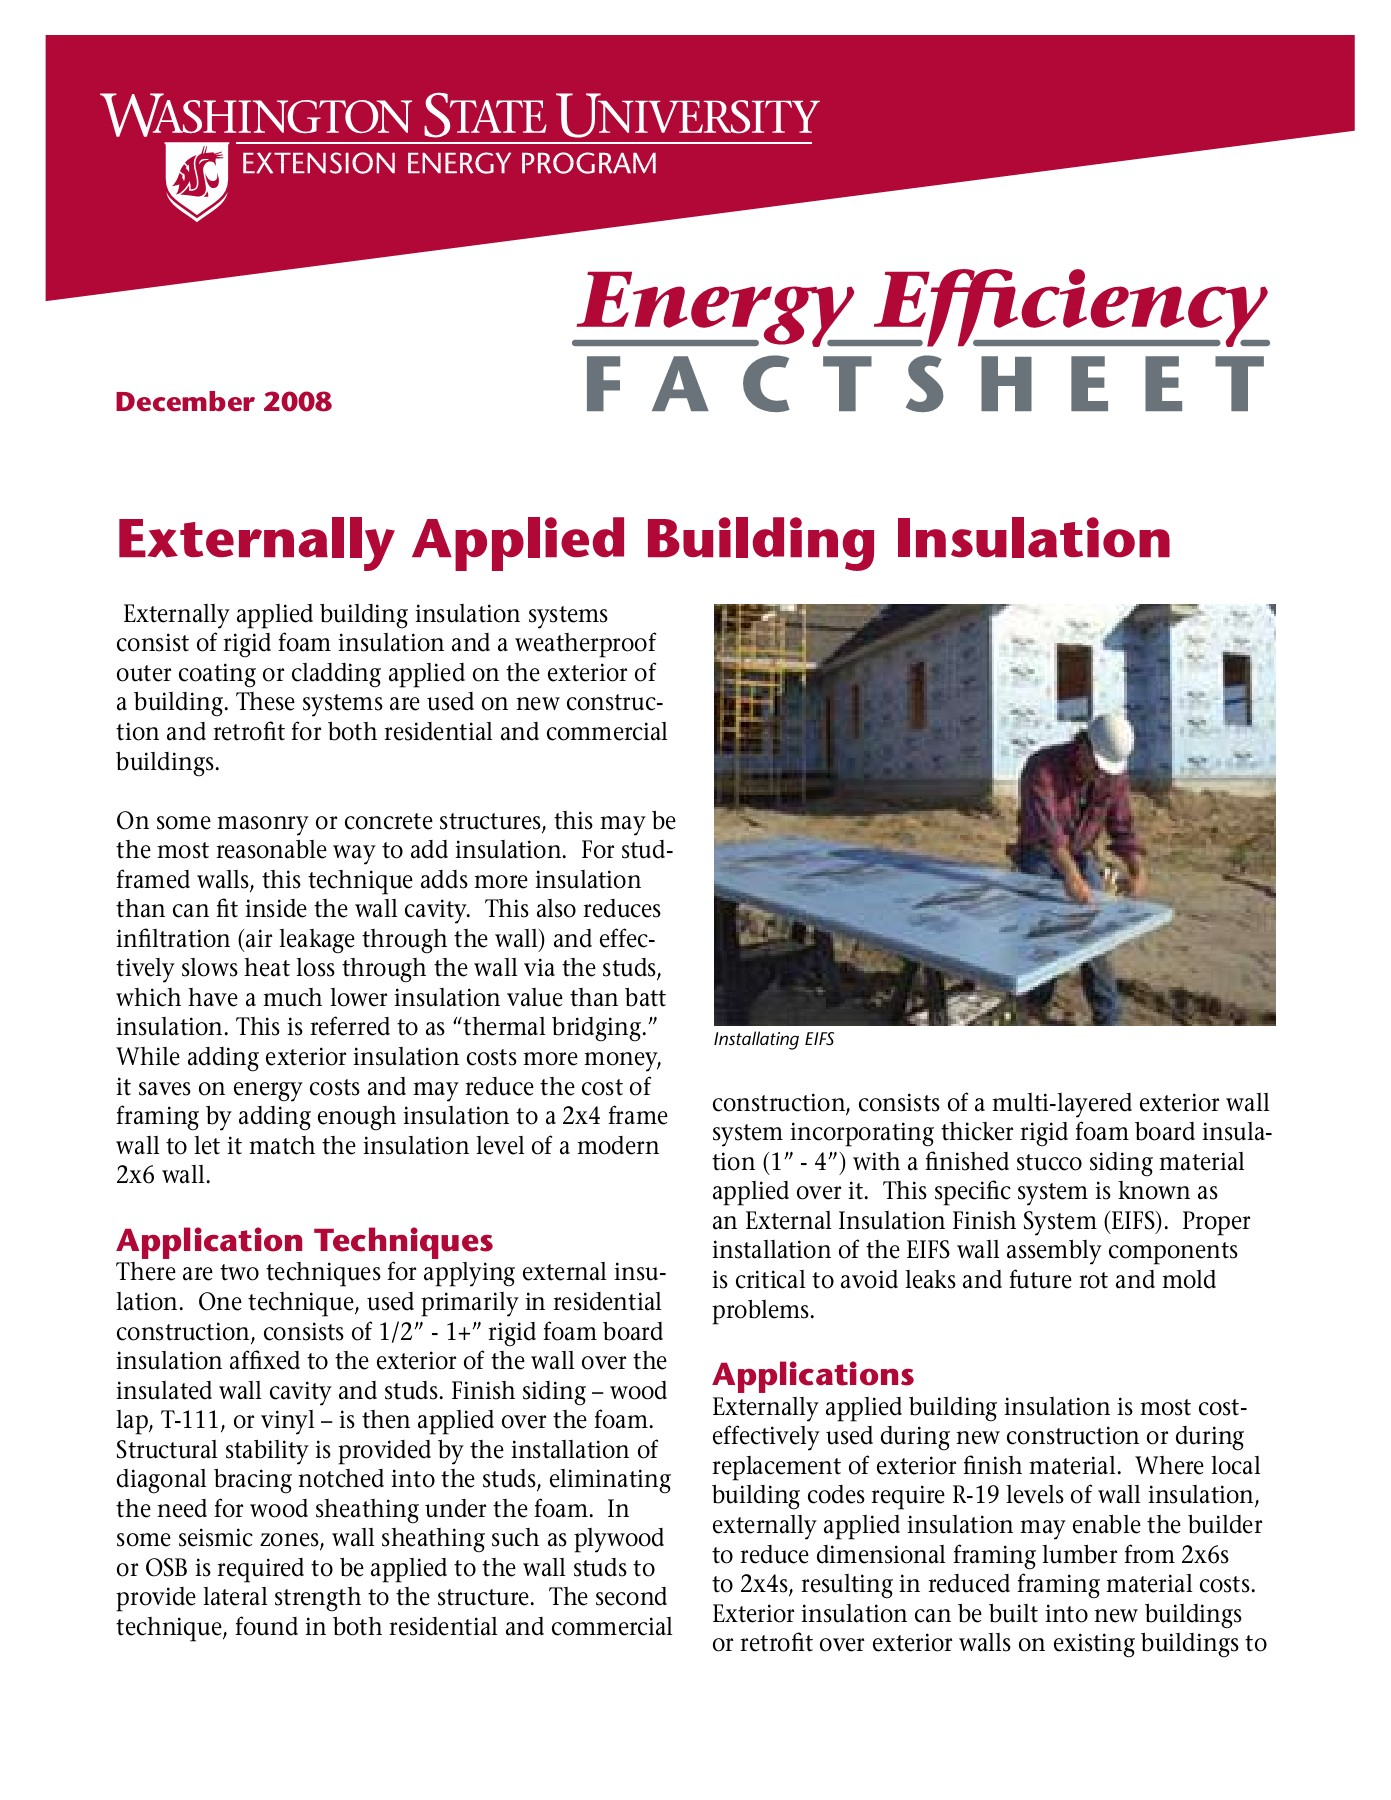 Externally Applied Building Insulation - WSU Energy Program